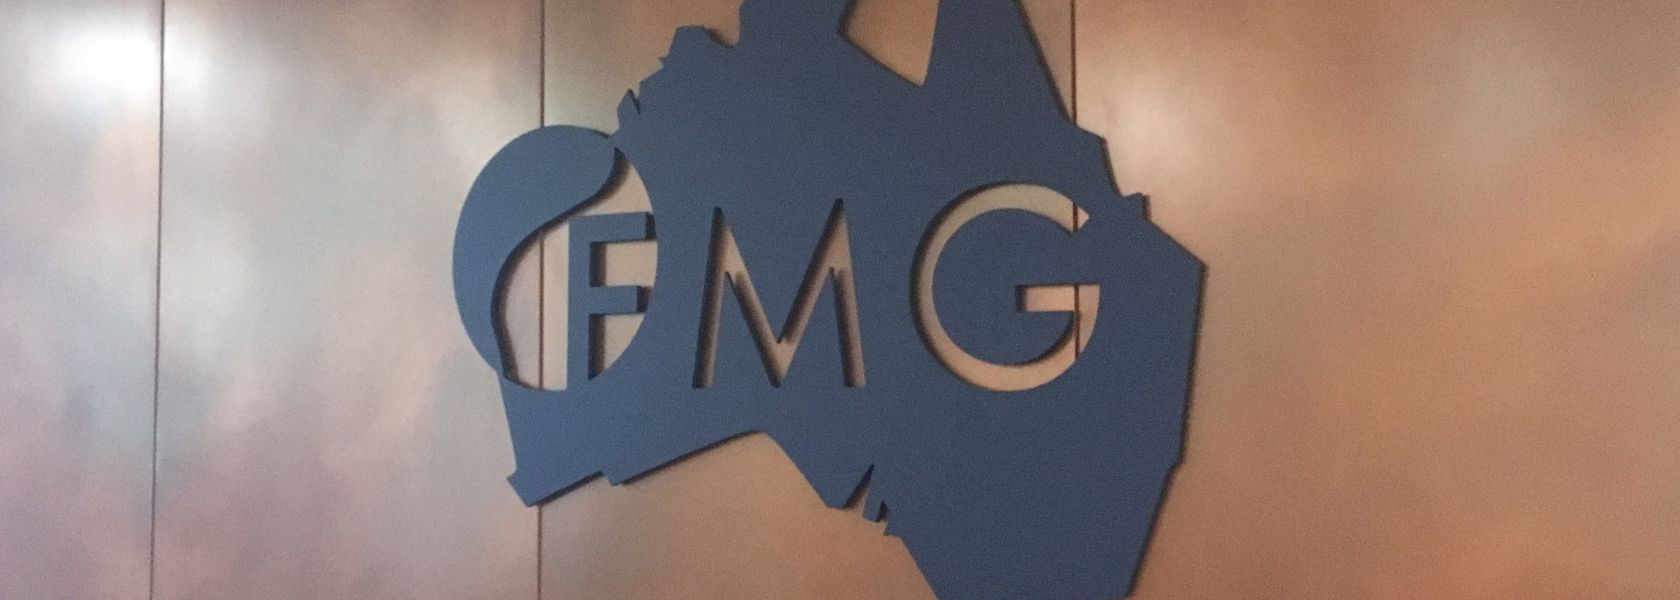 Fortescue Metals refinances debt